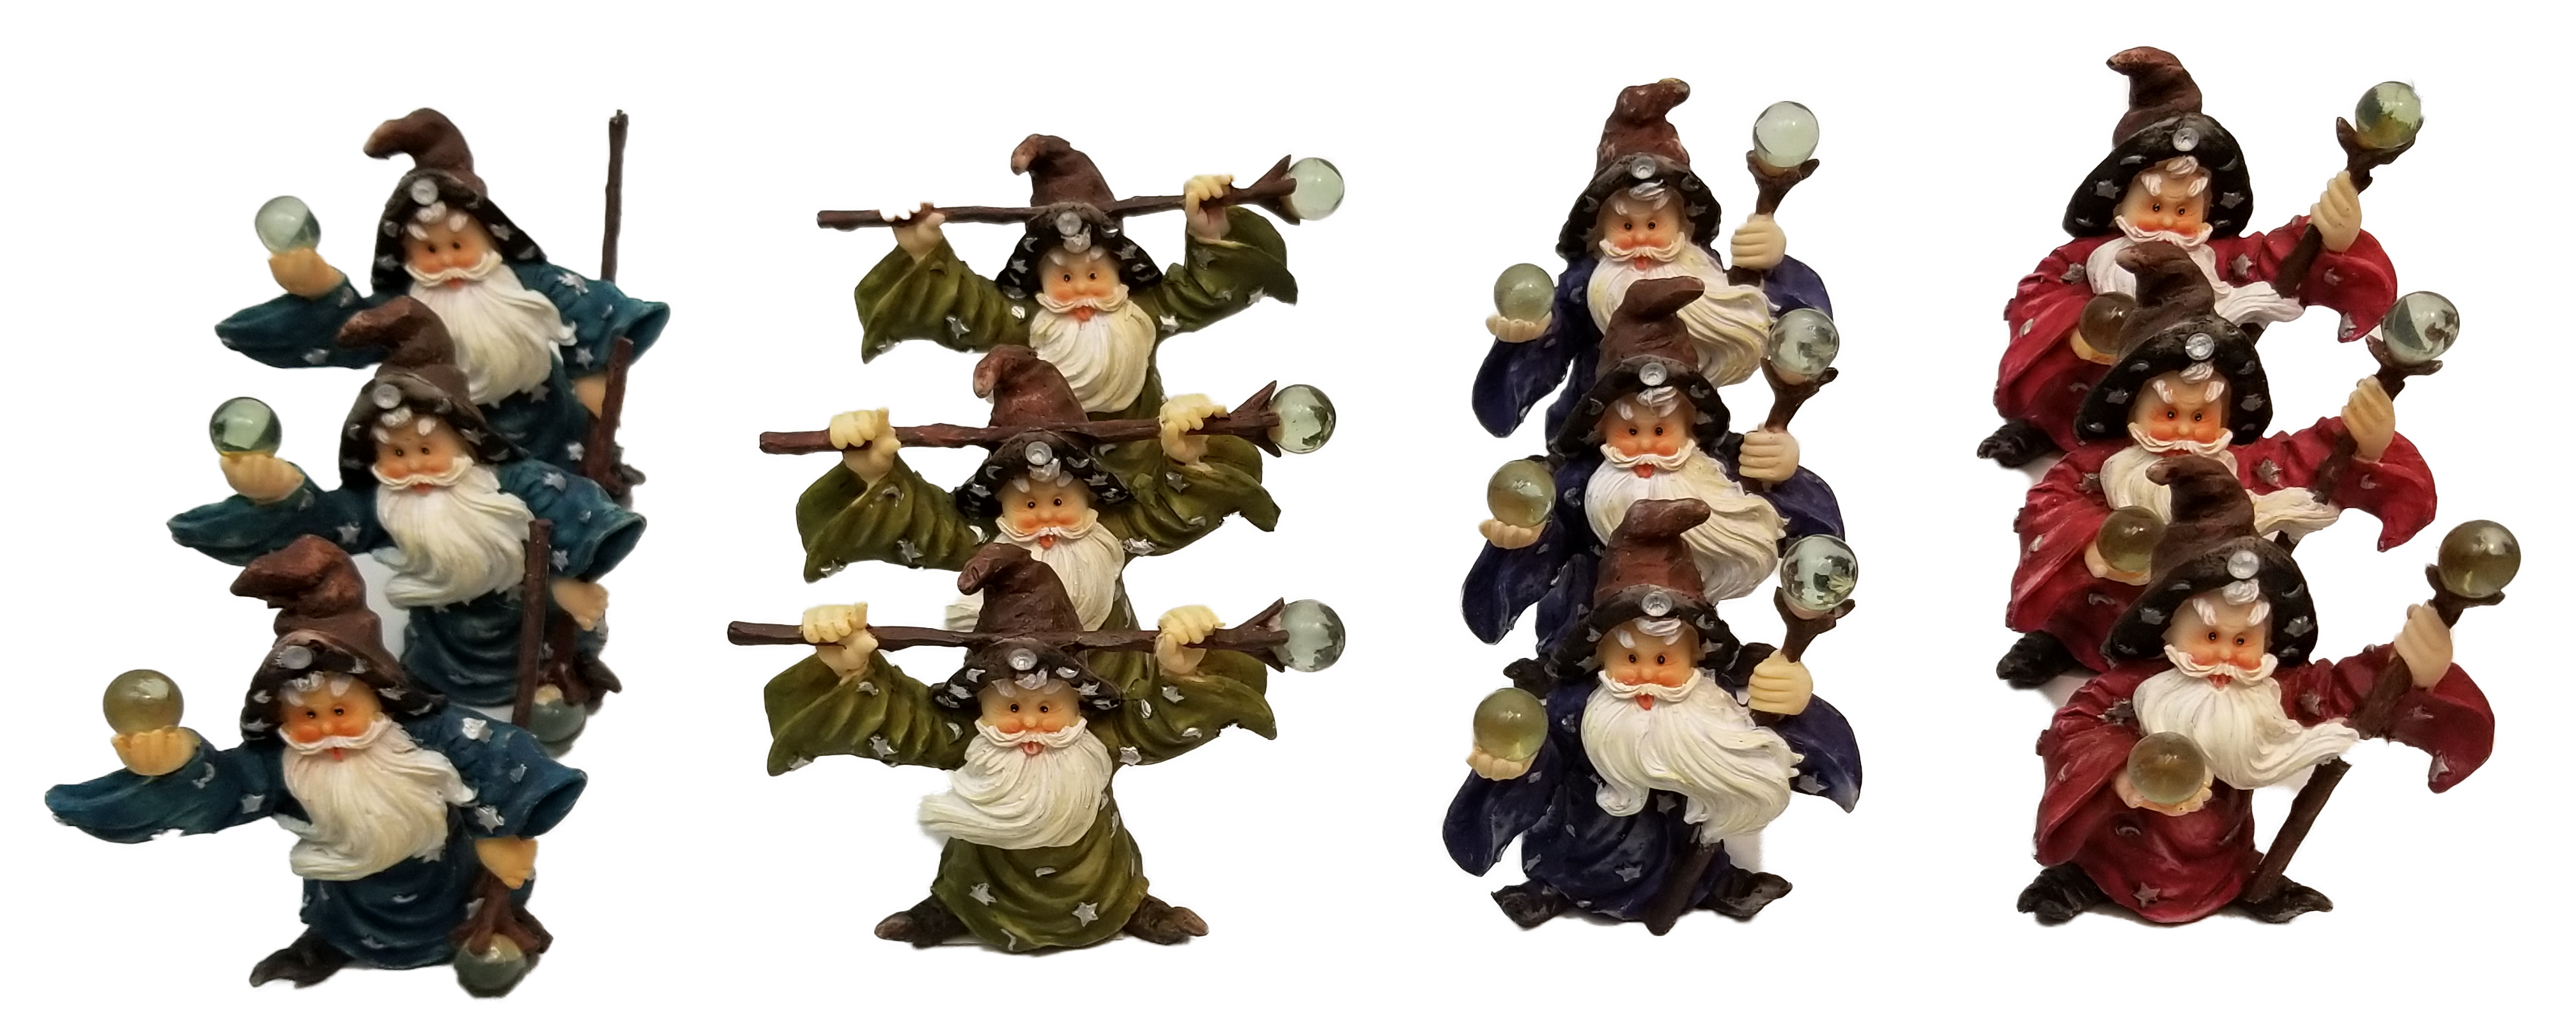 1256658 - Assorted Wizard Statues 12 Pc Display 12/Box